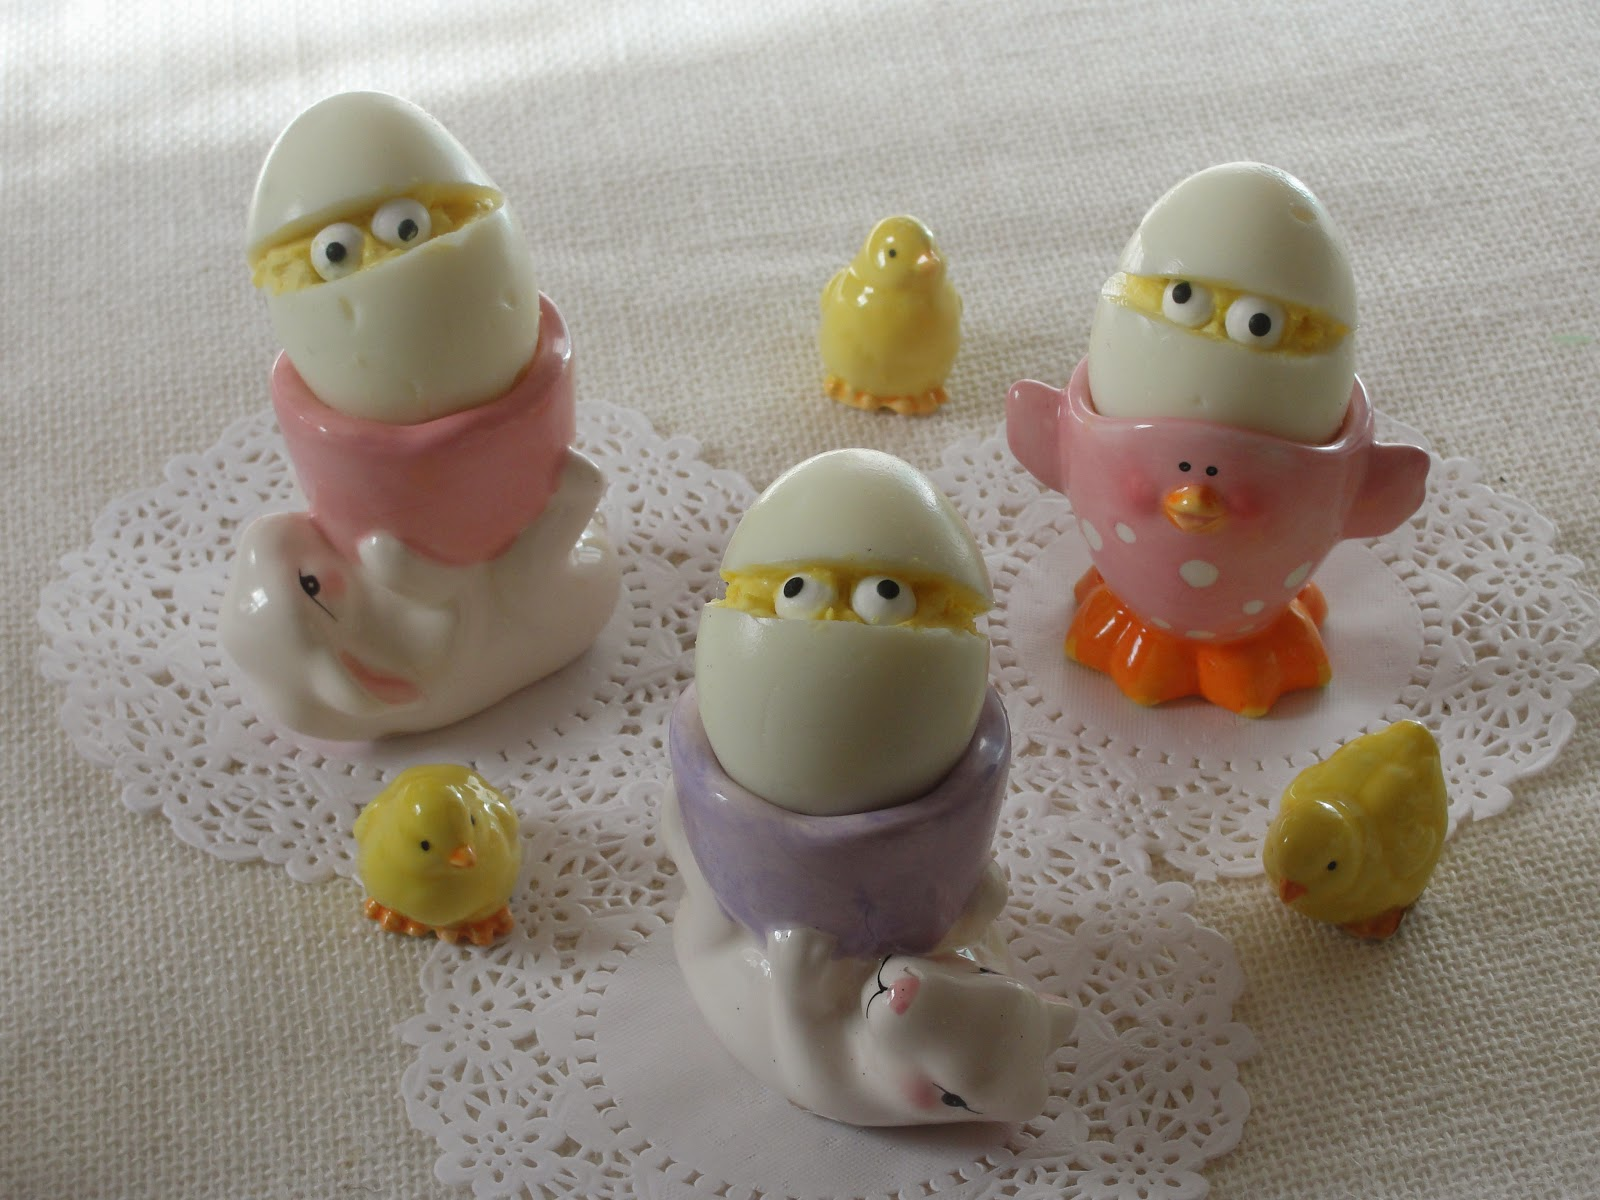 Cute Deviled Egg People and Some Unusual Deviled Egg Recipes